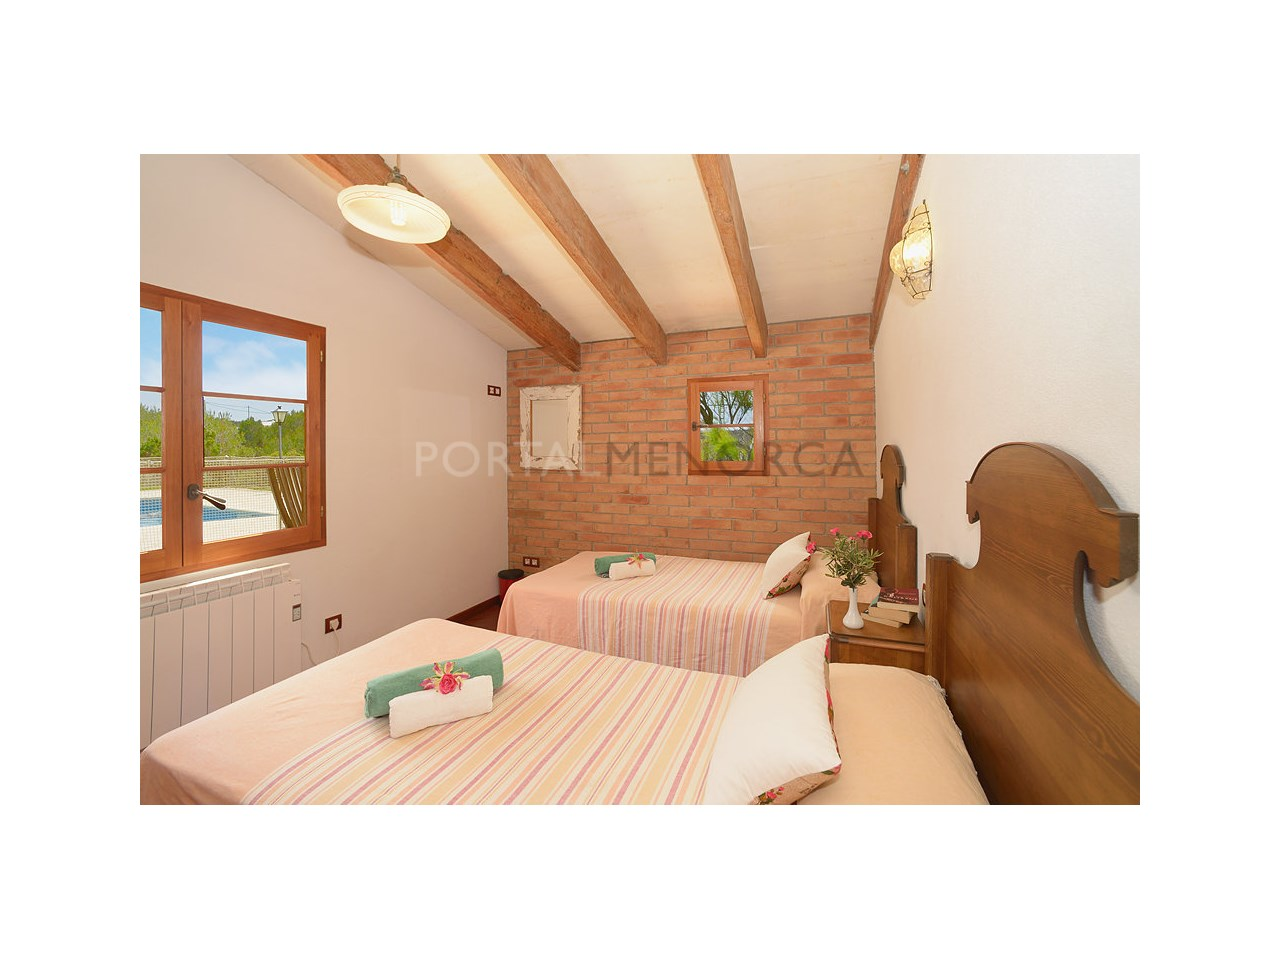 Countryhouse for sale in the Son Morell area- bedroom with views